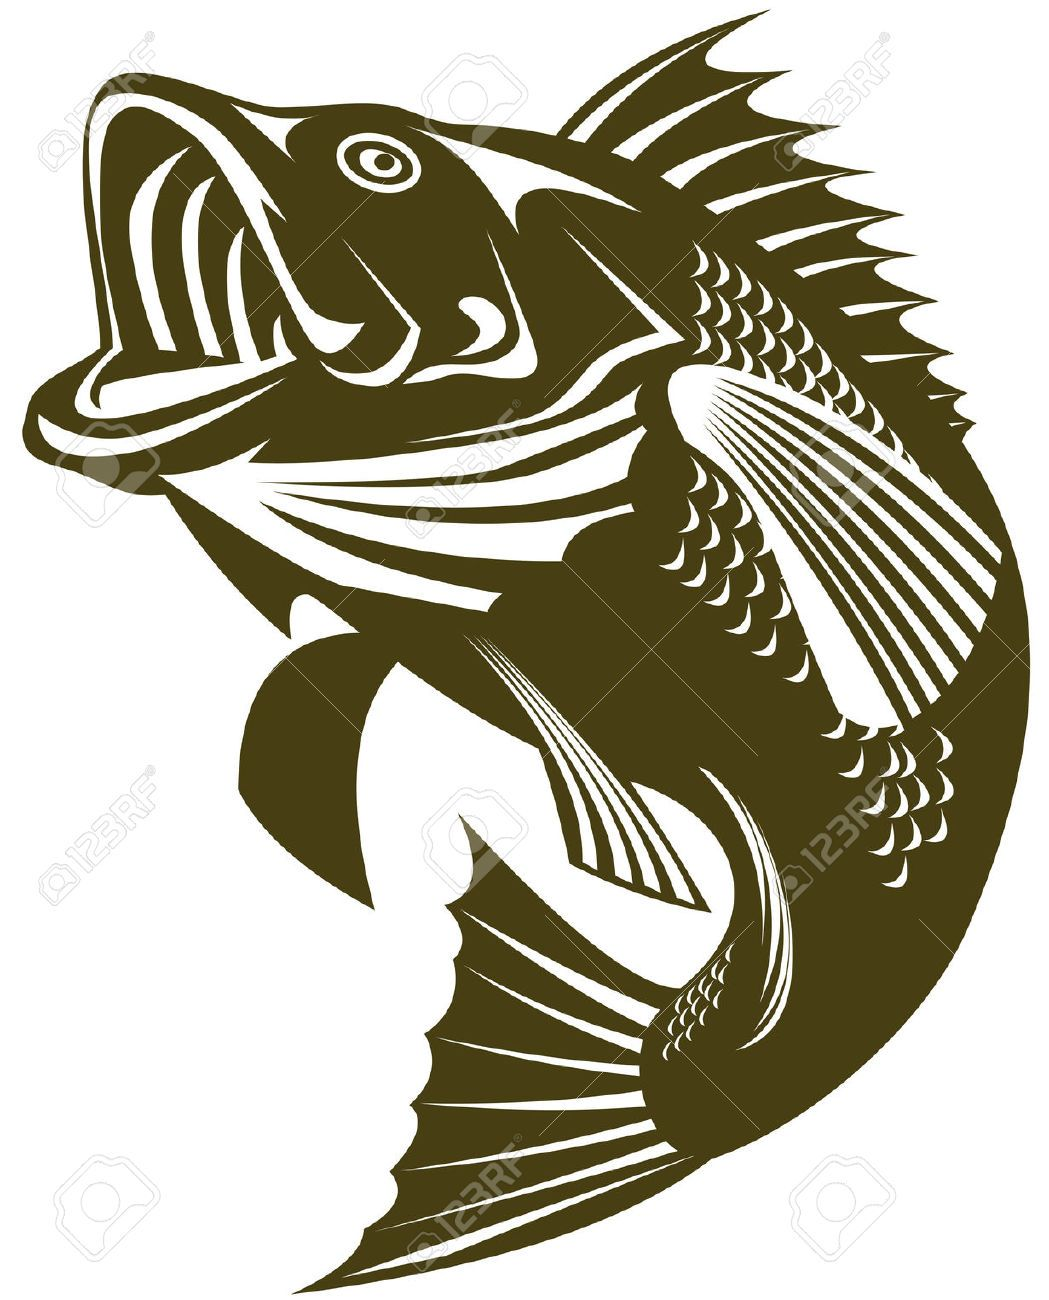 Largemouth Bass Cliparts Stock Vector And Royalty Free Largemouth.